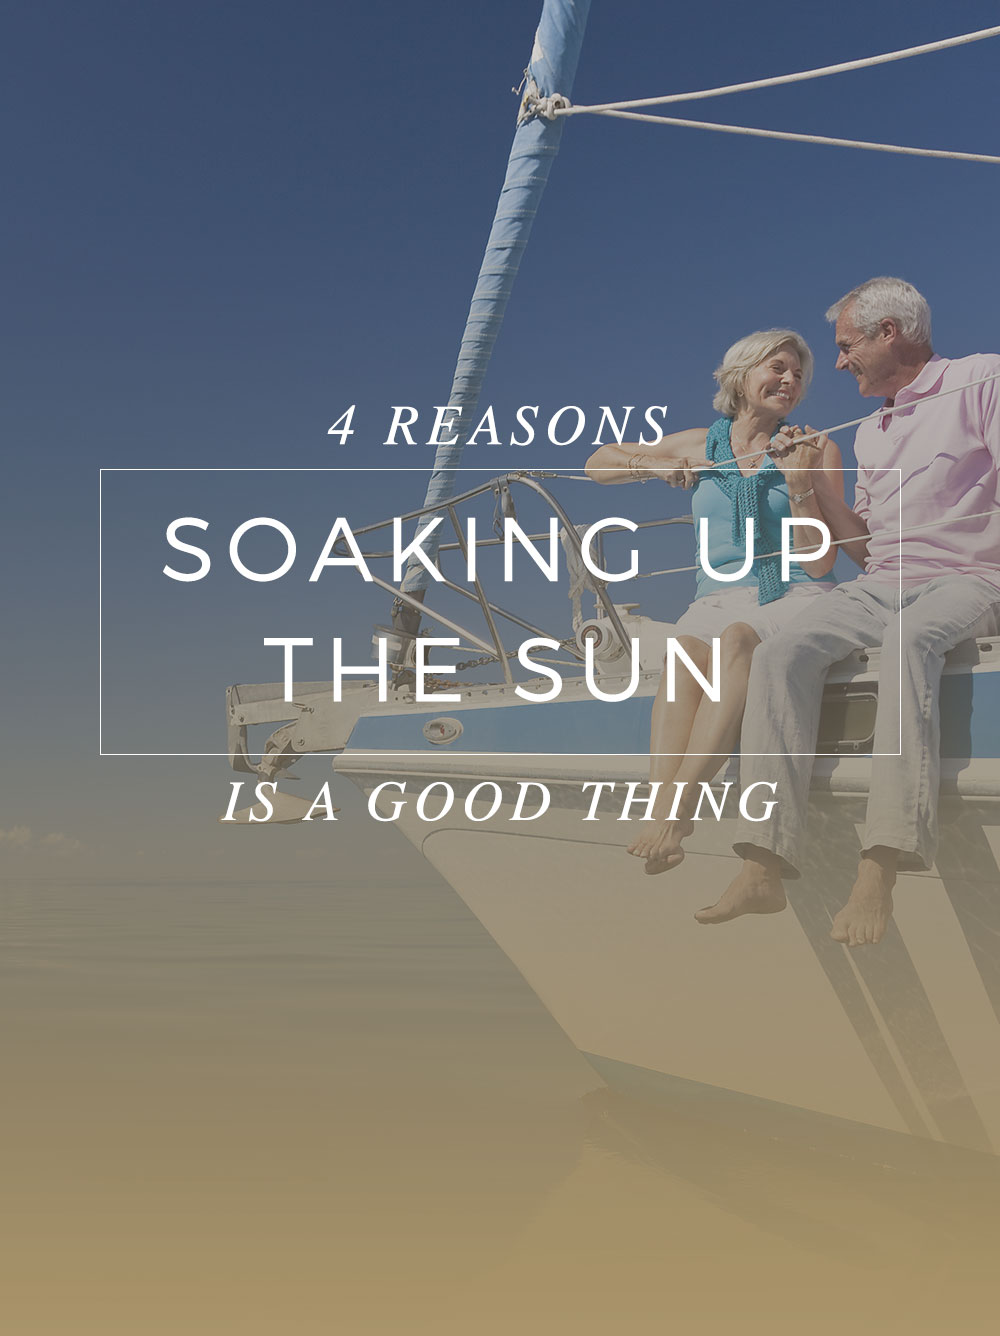 In the era of extreme sun protection, remember that a little sun can be a good thing. Here are four reasons why you should be okay with a little sun exposure.